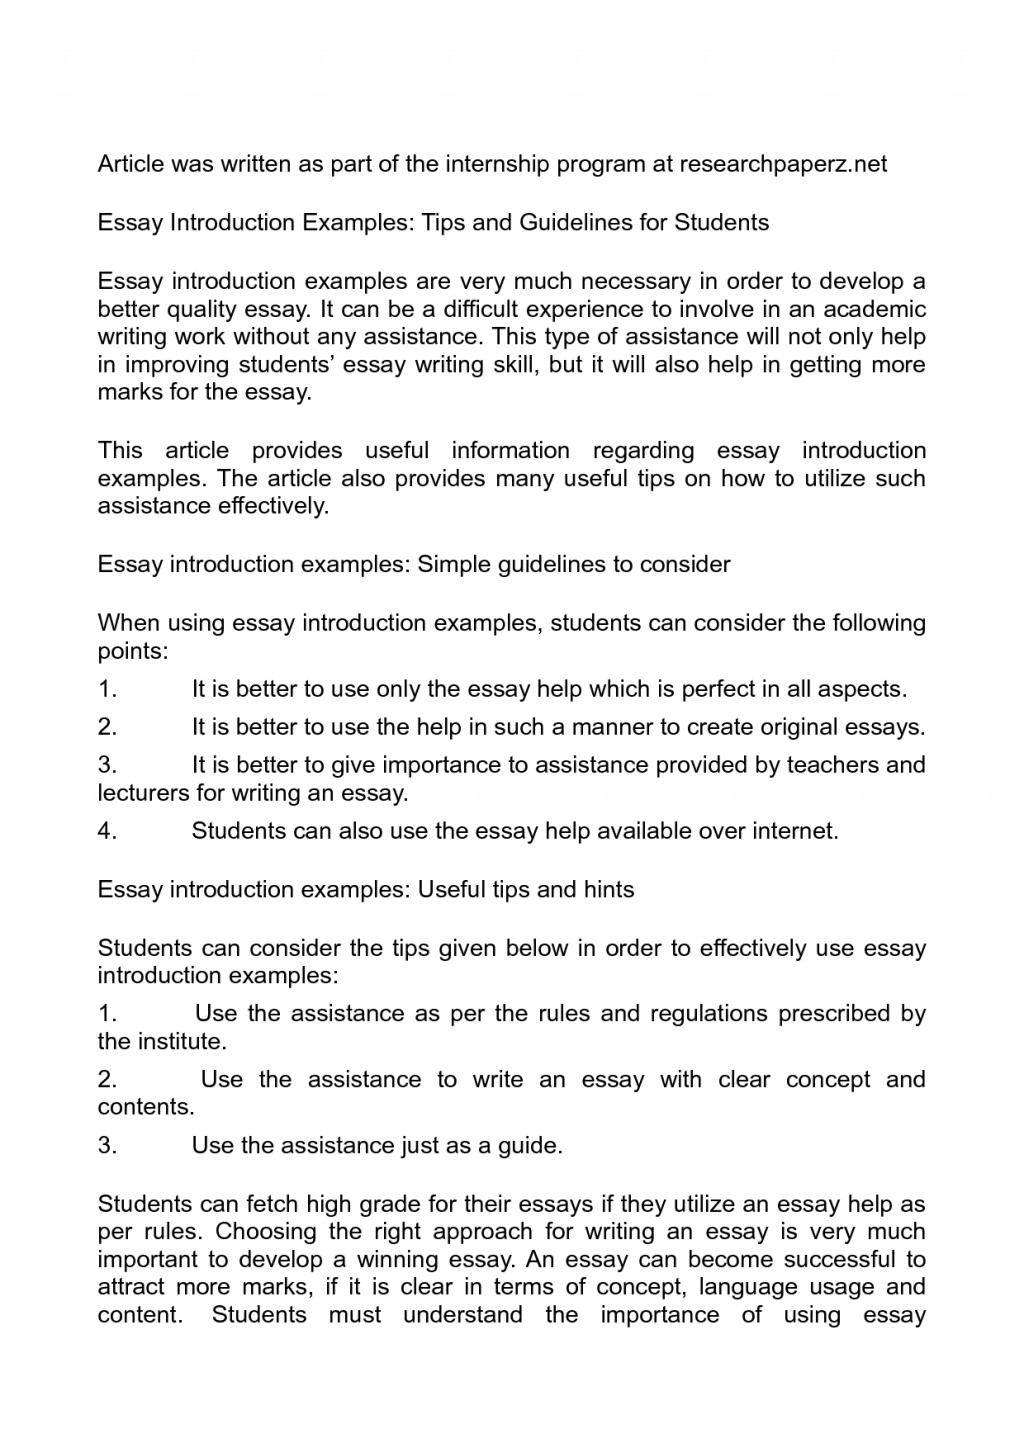 004 Eyx5t6okob Essay Introduction Sample Singular Examples University Pdf College Format Large